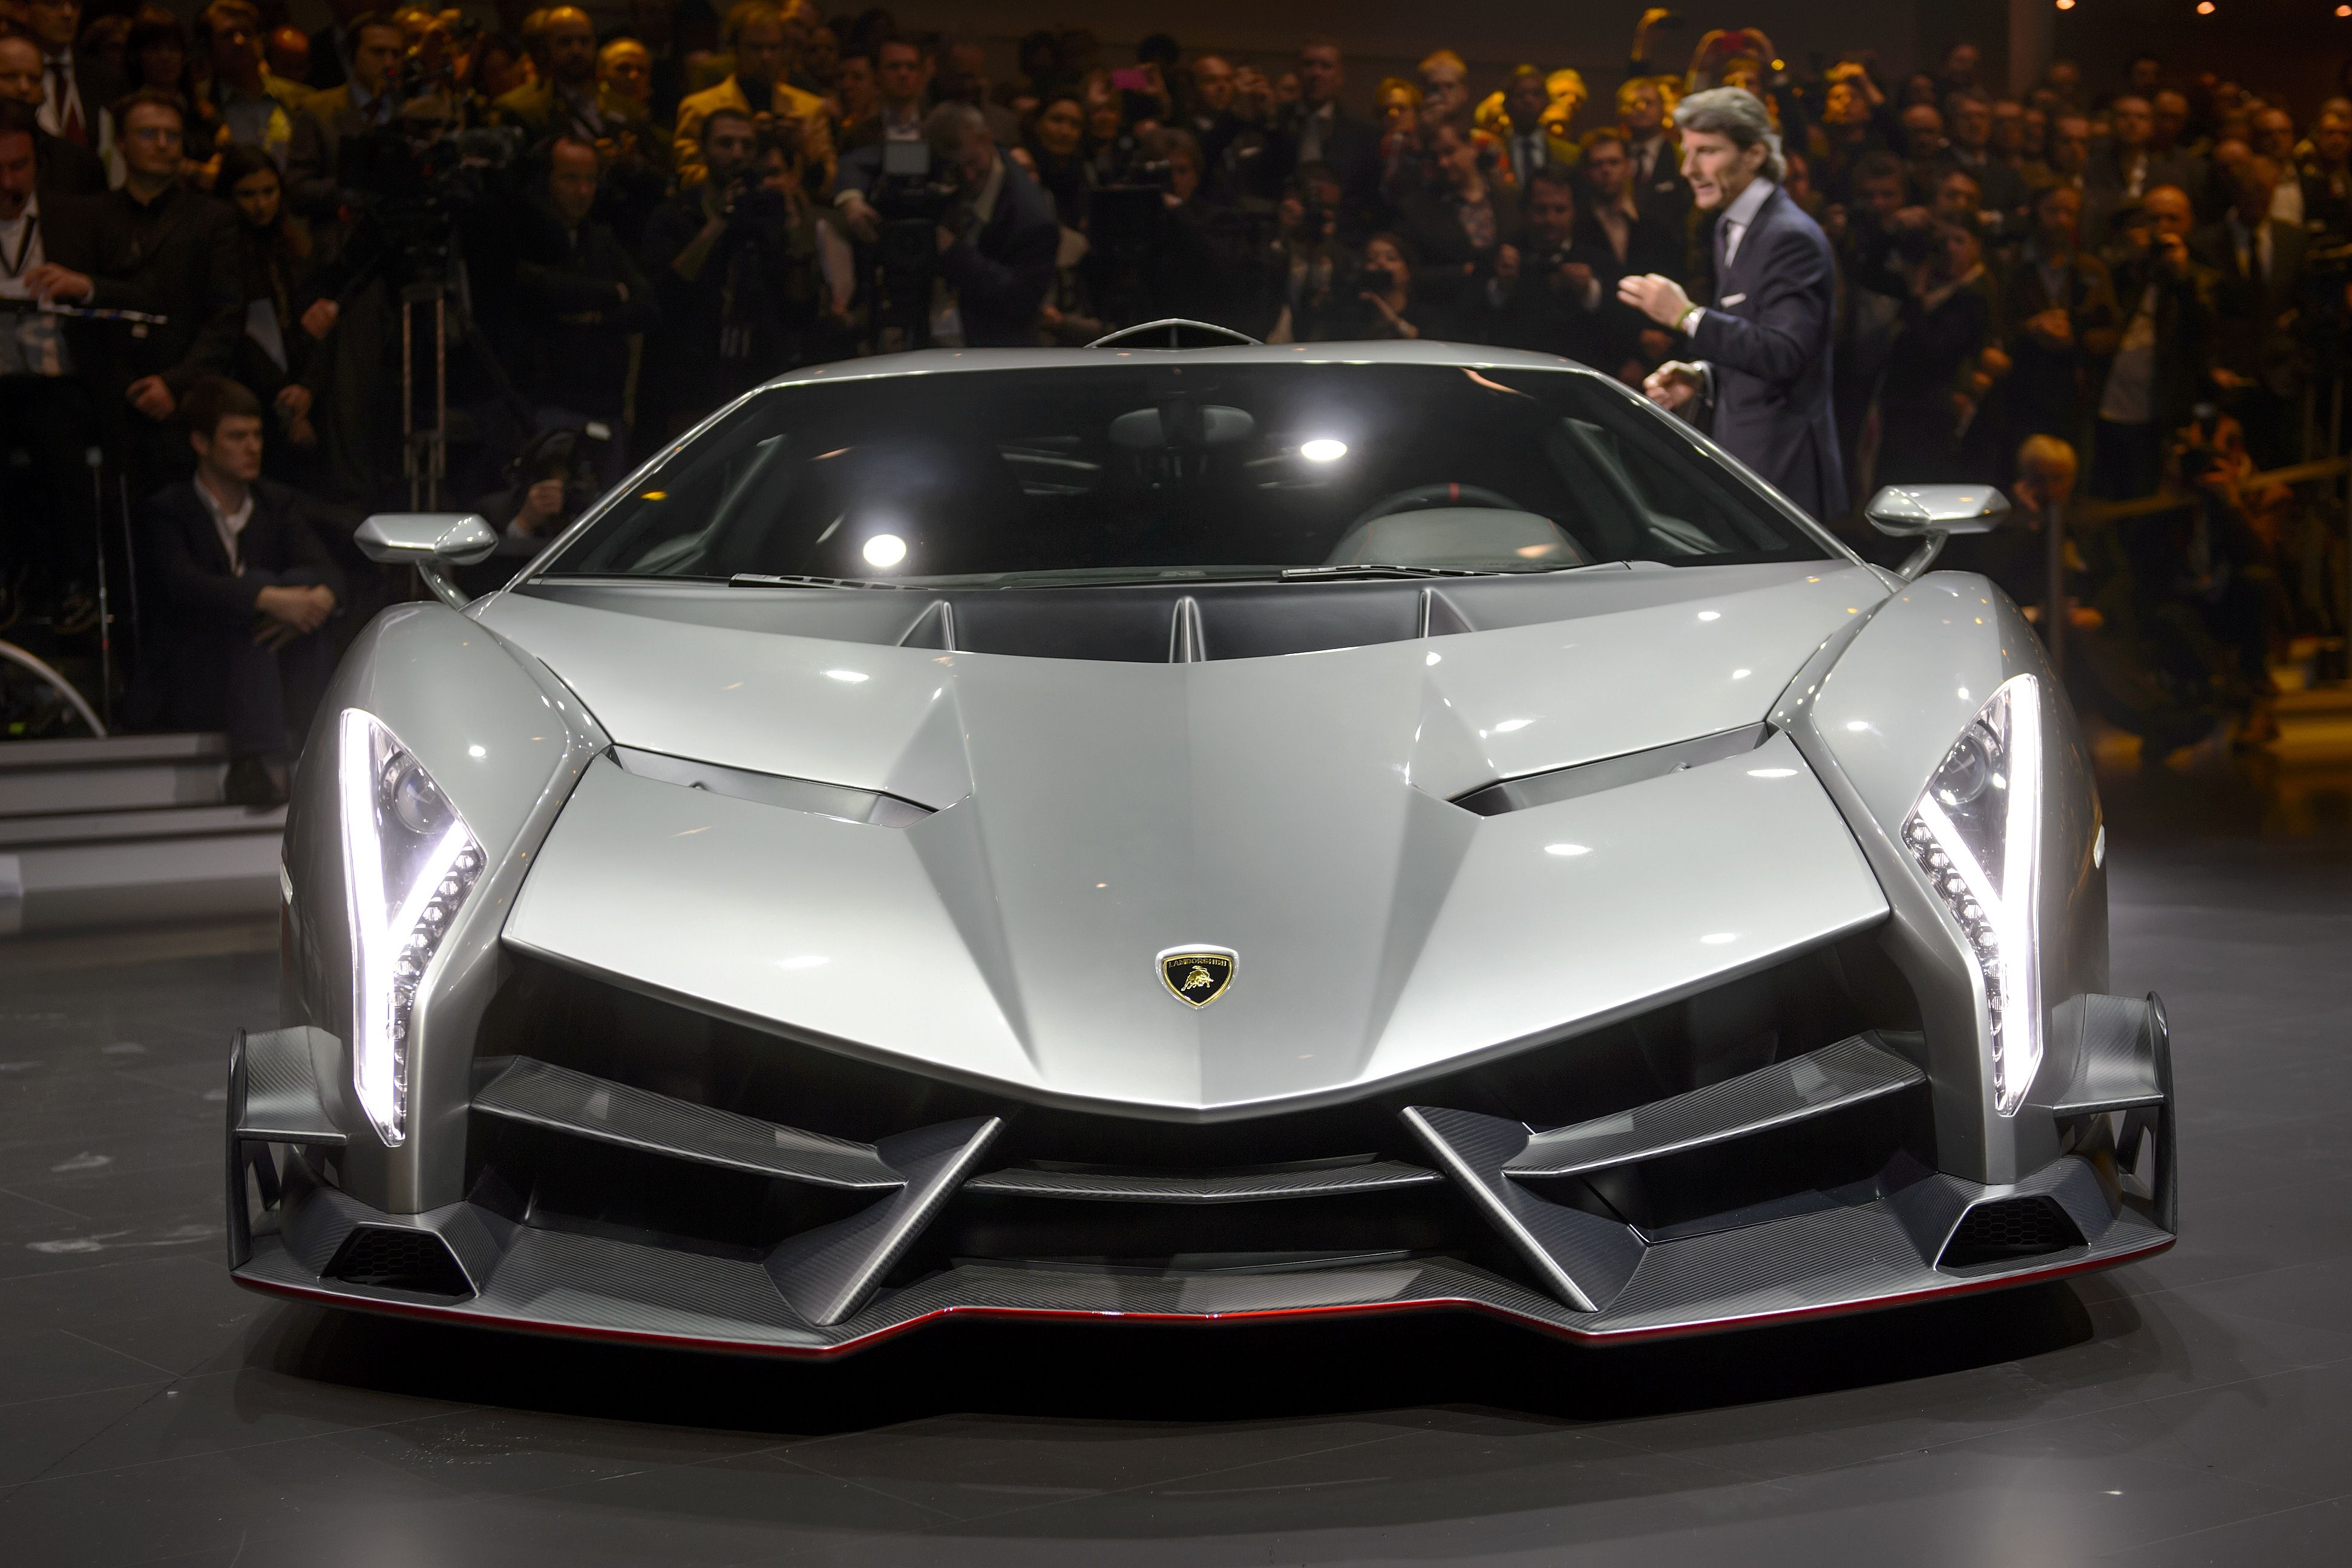 The new Lamborghini Veneno is introcuded by CEO and Chairman Stephan Winkelmann during a preview of Volkswagen Group (VW) on March 4, 2013 ahead of the Geneva Car Show in Geneva. AFP PHOTO / FABRICE COFFRINI